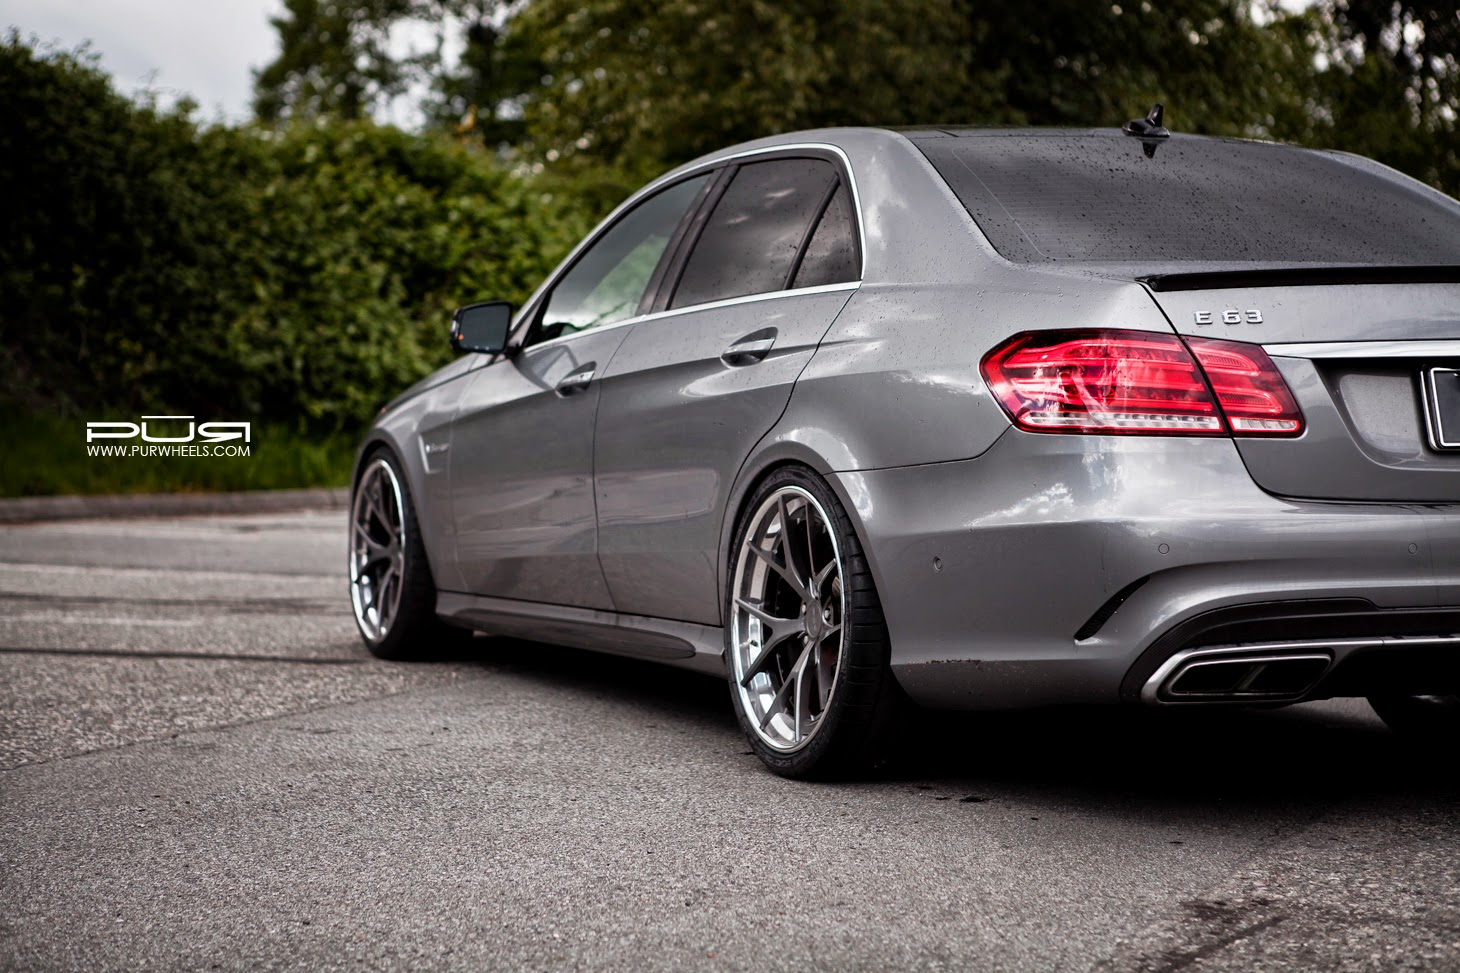 Mercedes benz w212 e63 amg facelift on pur wheels benztuning for Mercedes benz e63 s amg